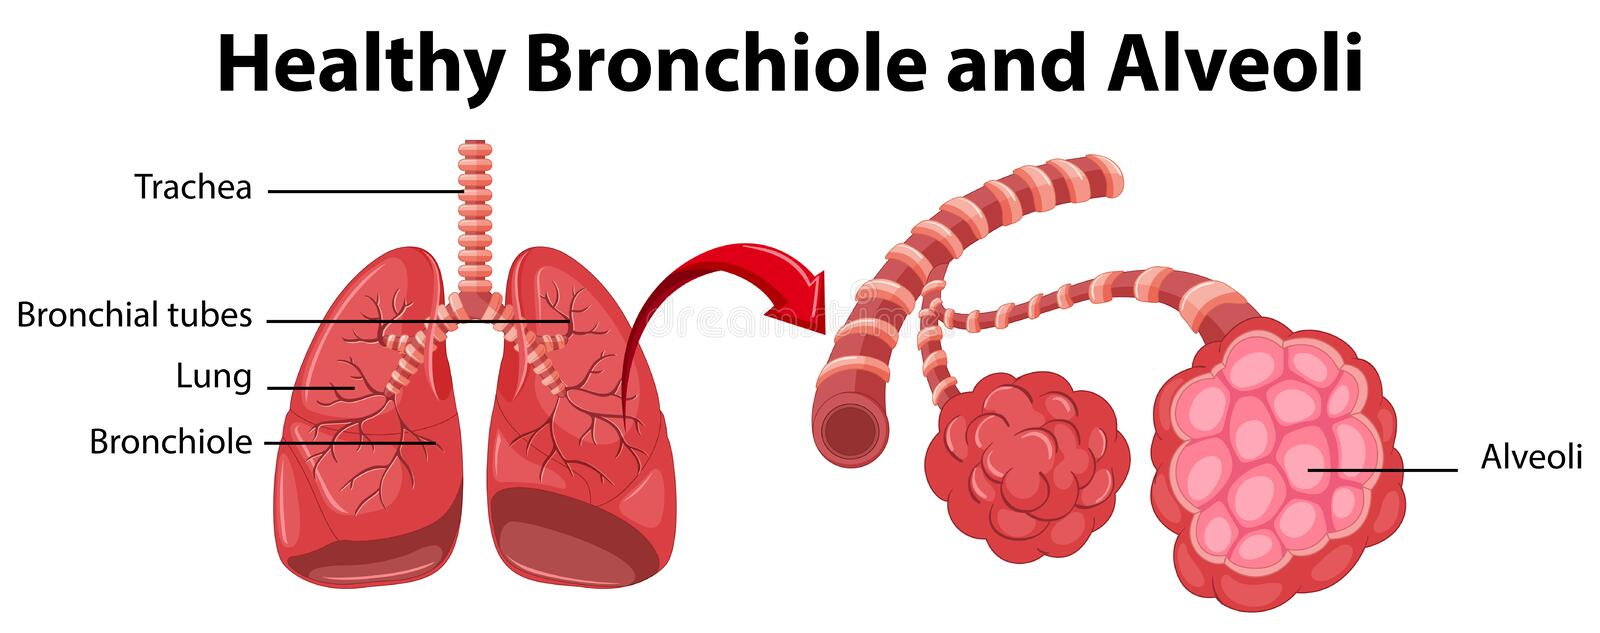 Diagram showing healthy bronchiole and alveoli stock vector download diagram showing healthy bronchiole and alveoli stock vector illustration of path image ccuart Gallery